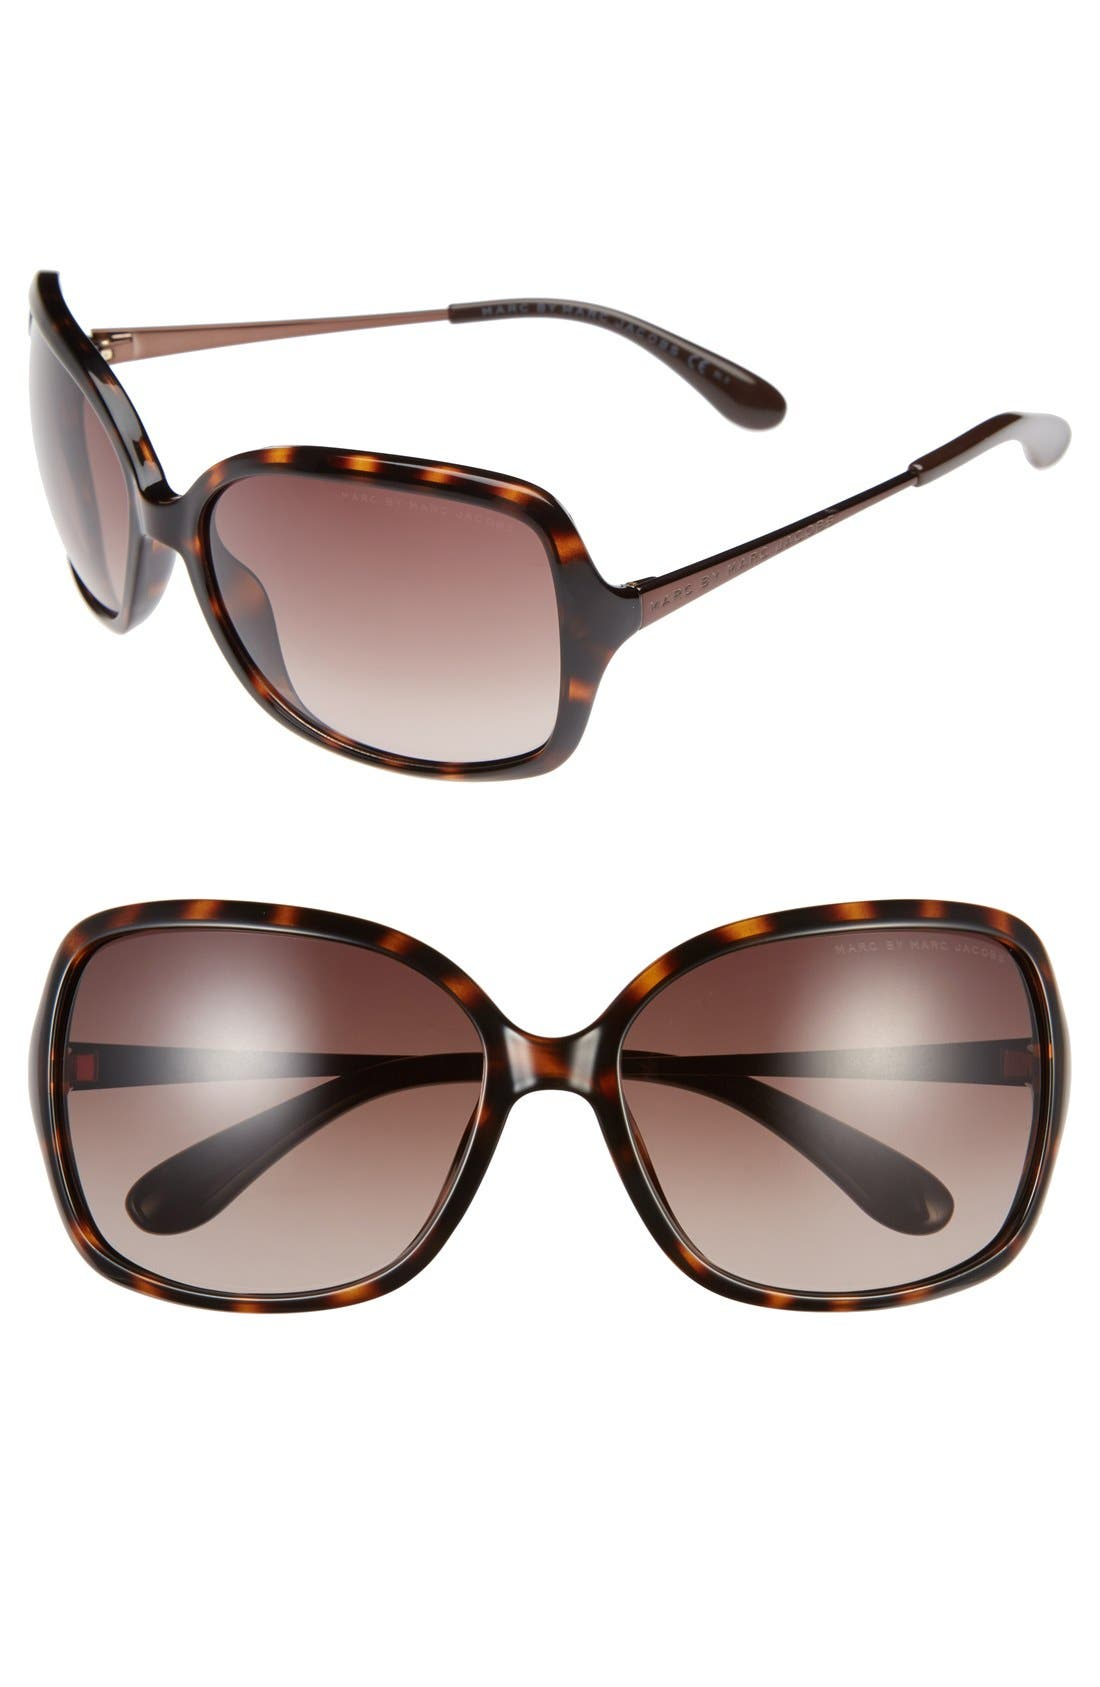 Main Image - MARC BY MARC JACOBS 59mm Square Sunglasses